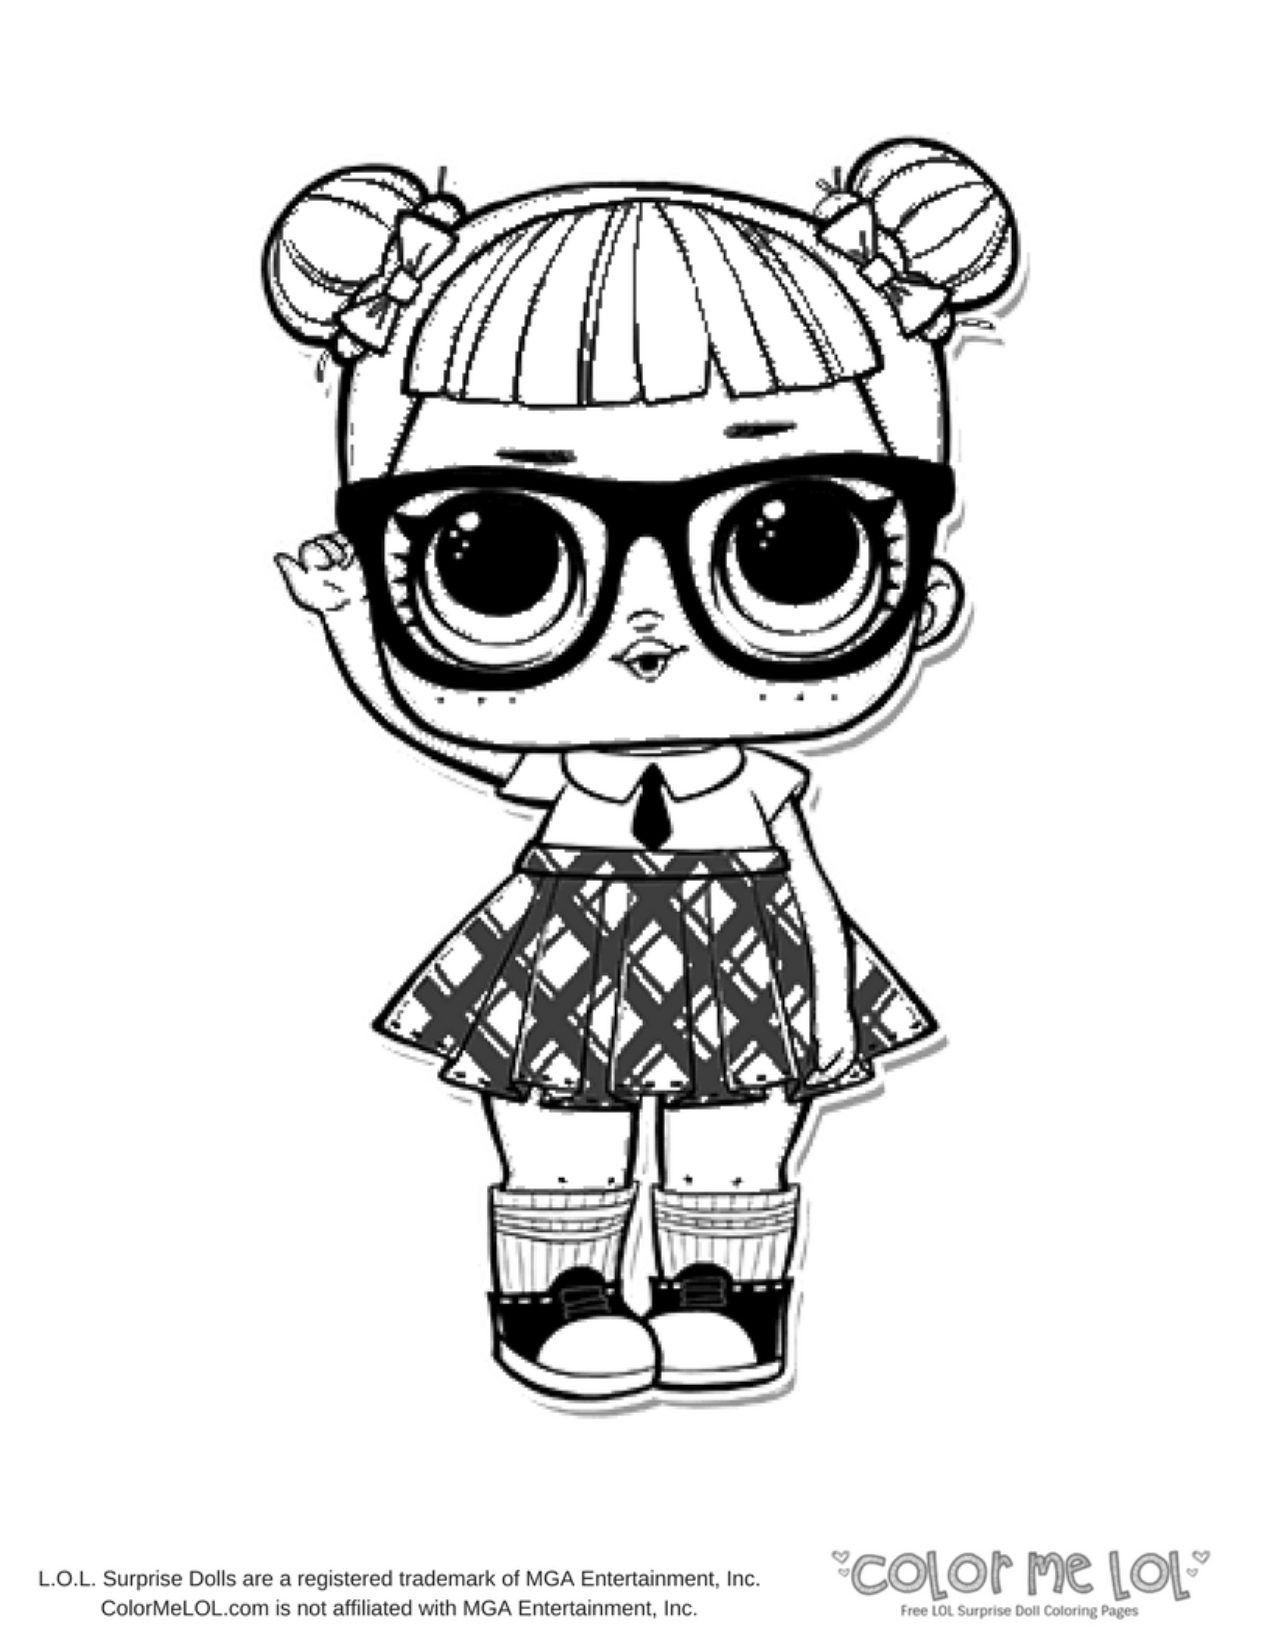 Image Result For Lol Doll Coloring Sheets Coloring Books Birthday Coloring Pages Coloring Pages For Kids